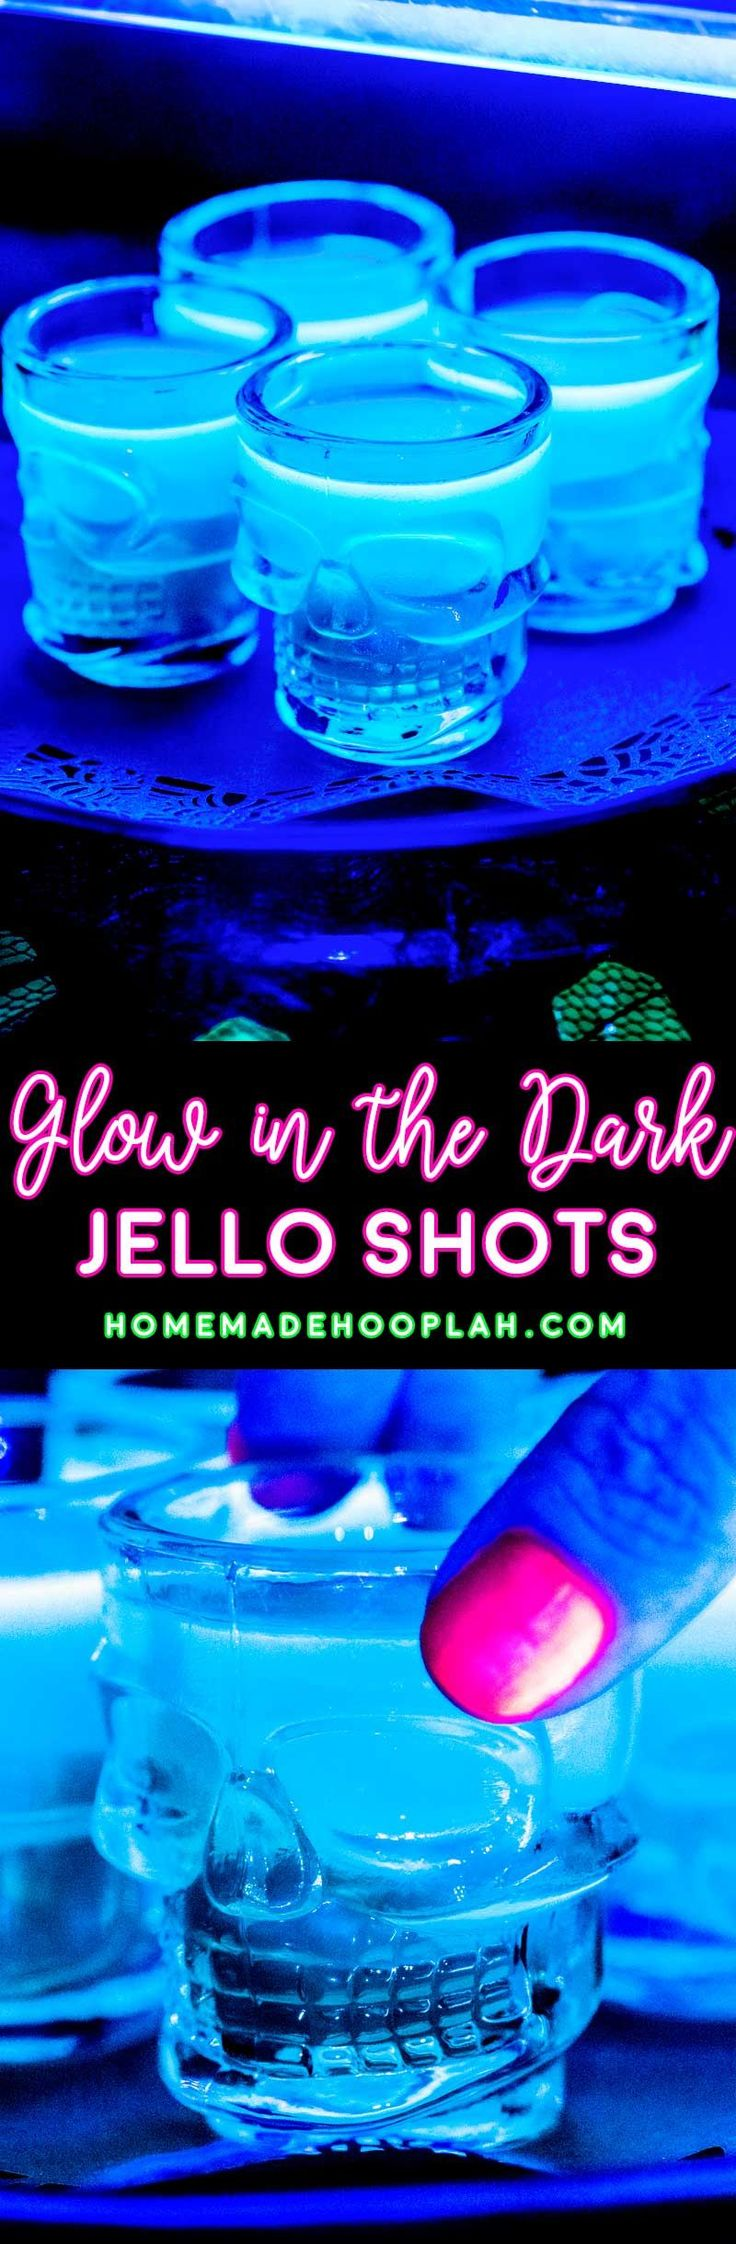 Glow in the Dark Jello Shots! Electrify your next party with these glow in the dark jello shots! You only need 3 ingredients and they can be spiked with any sweet rum or vodka.   HomemadeHooplah.com